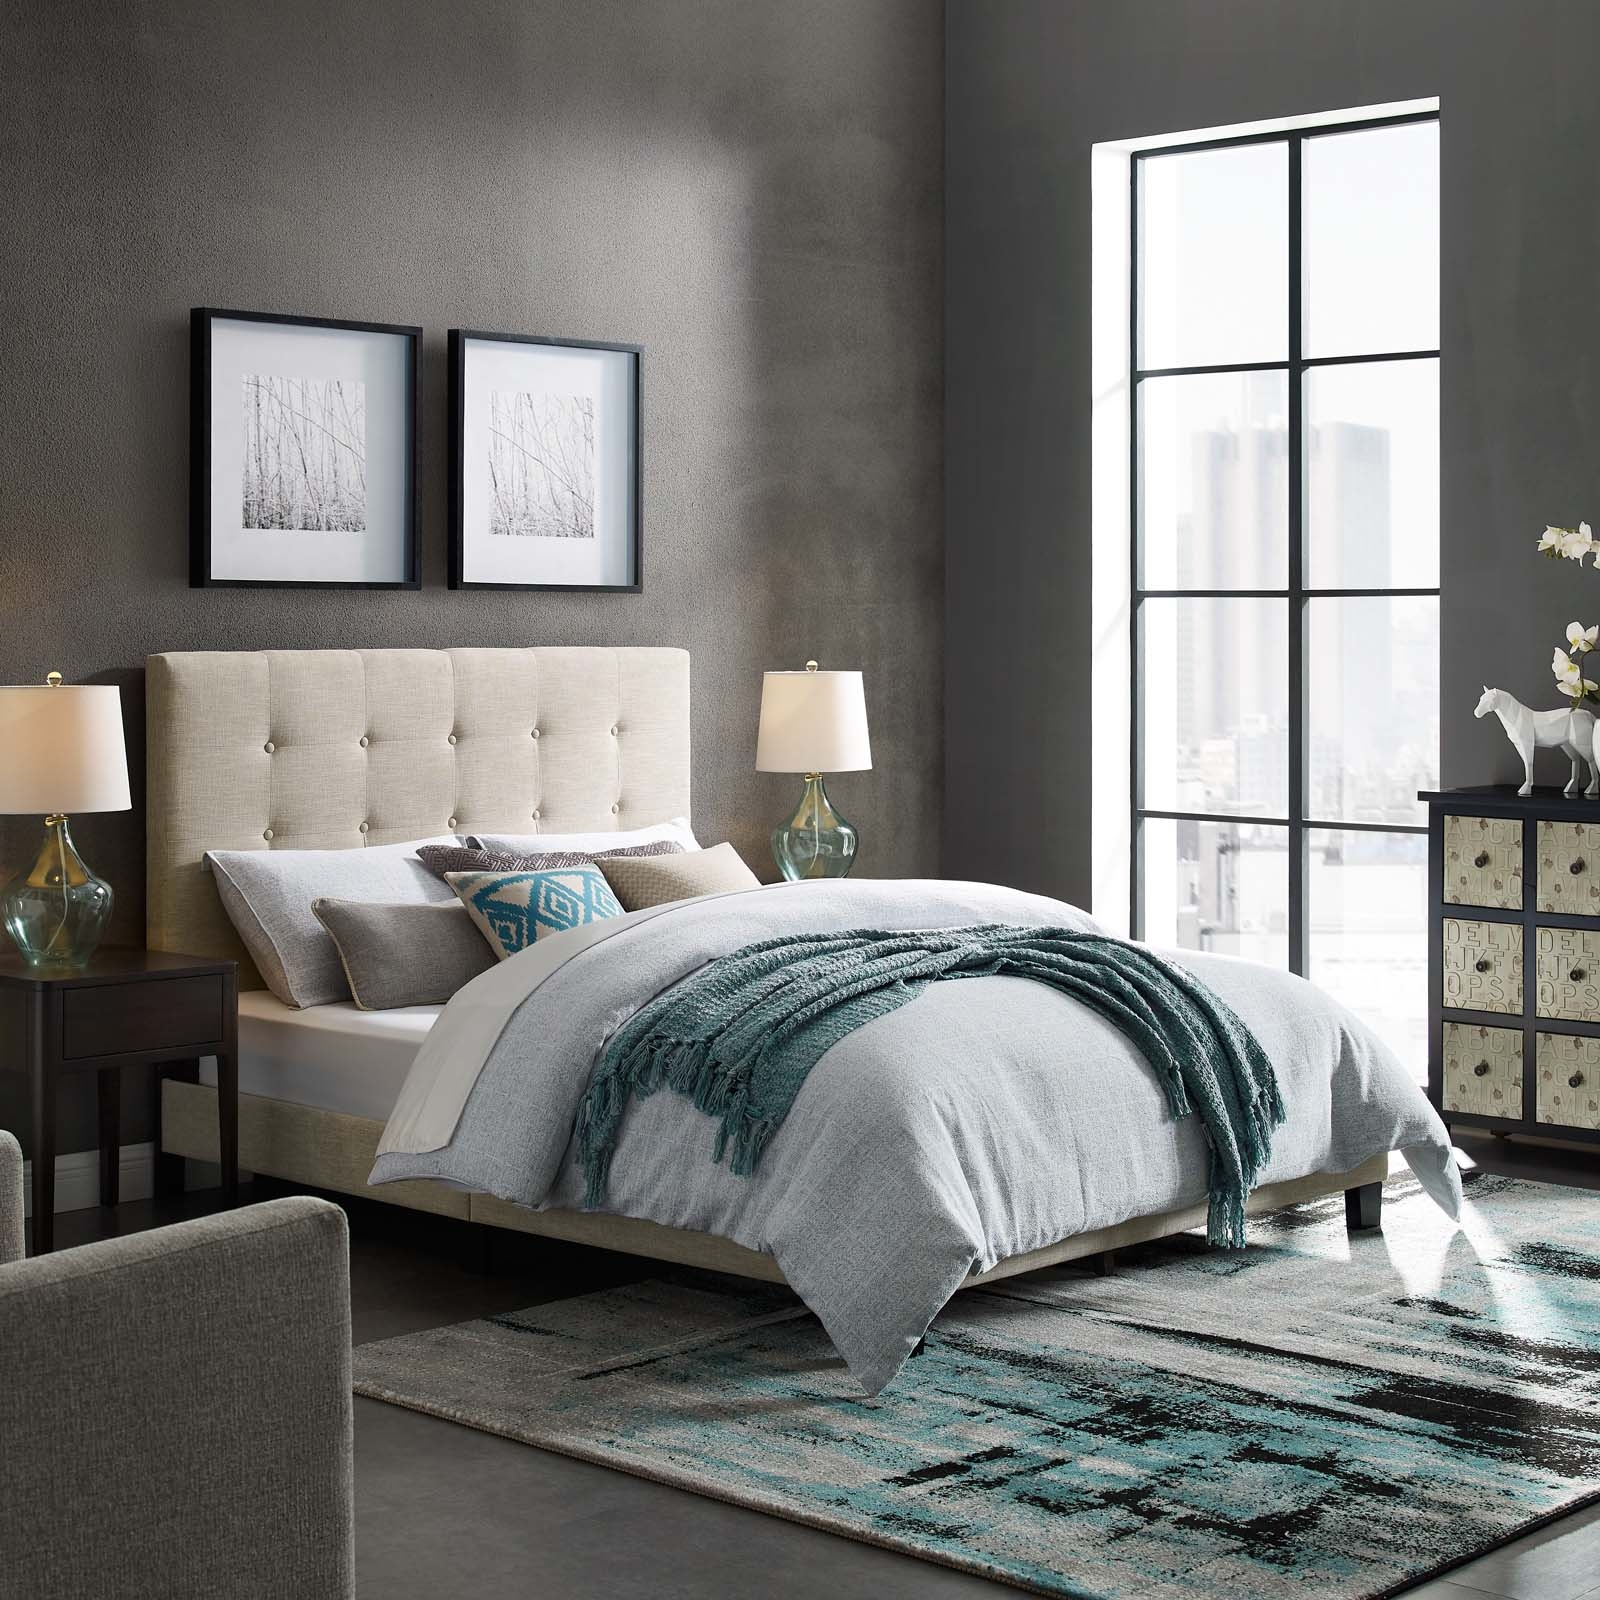 Melanie Queen Tufted Button Upholstered Fabric Platform Bed in Beige